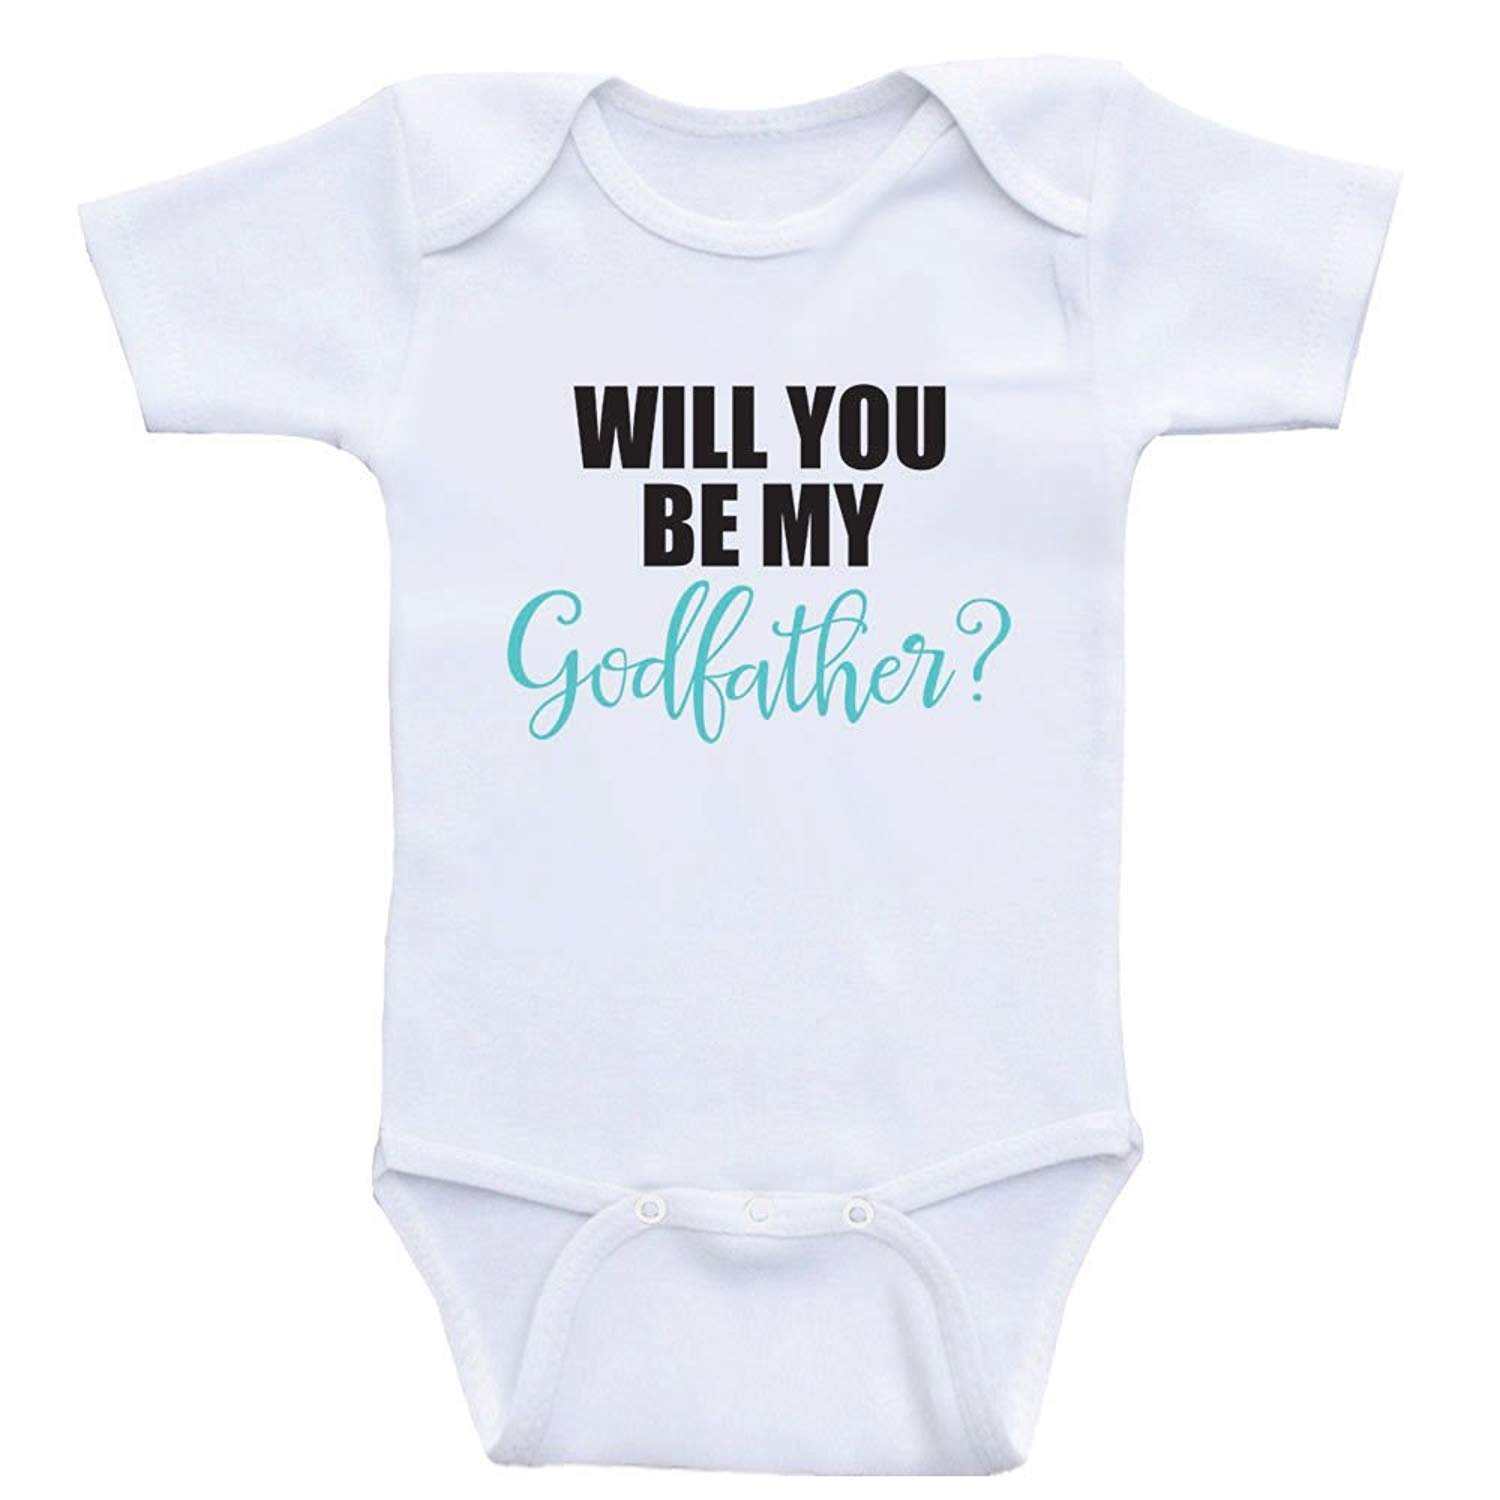 Promini Cute Baby Onesie Will You Be My Godfather Funny Bodysuits